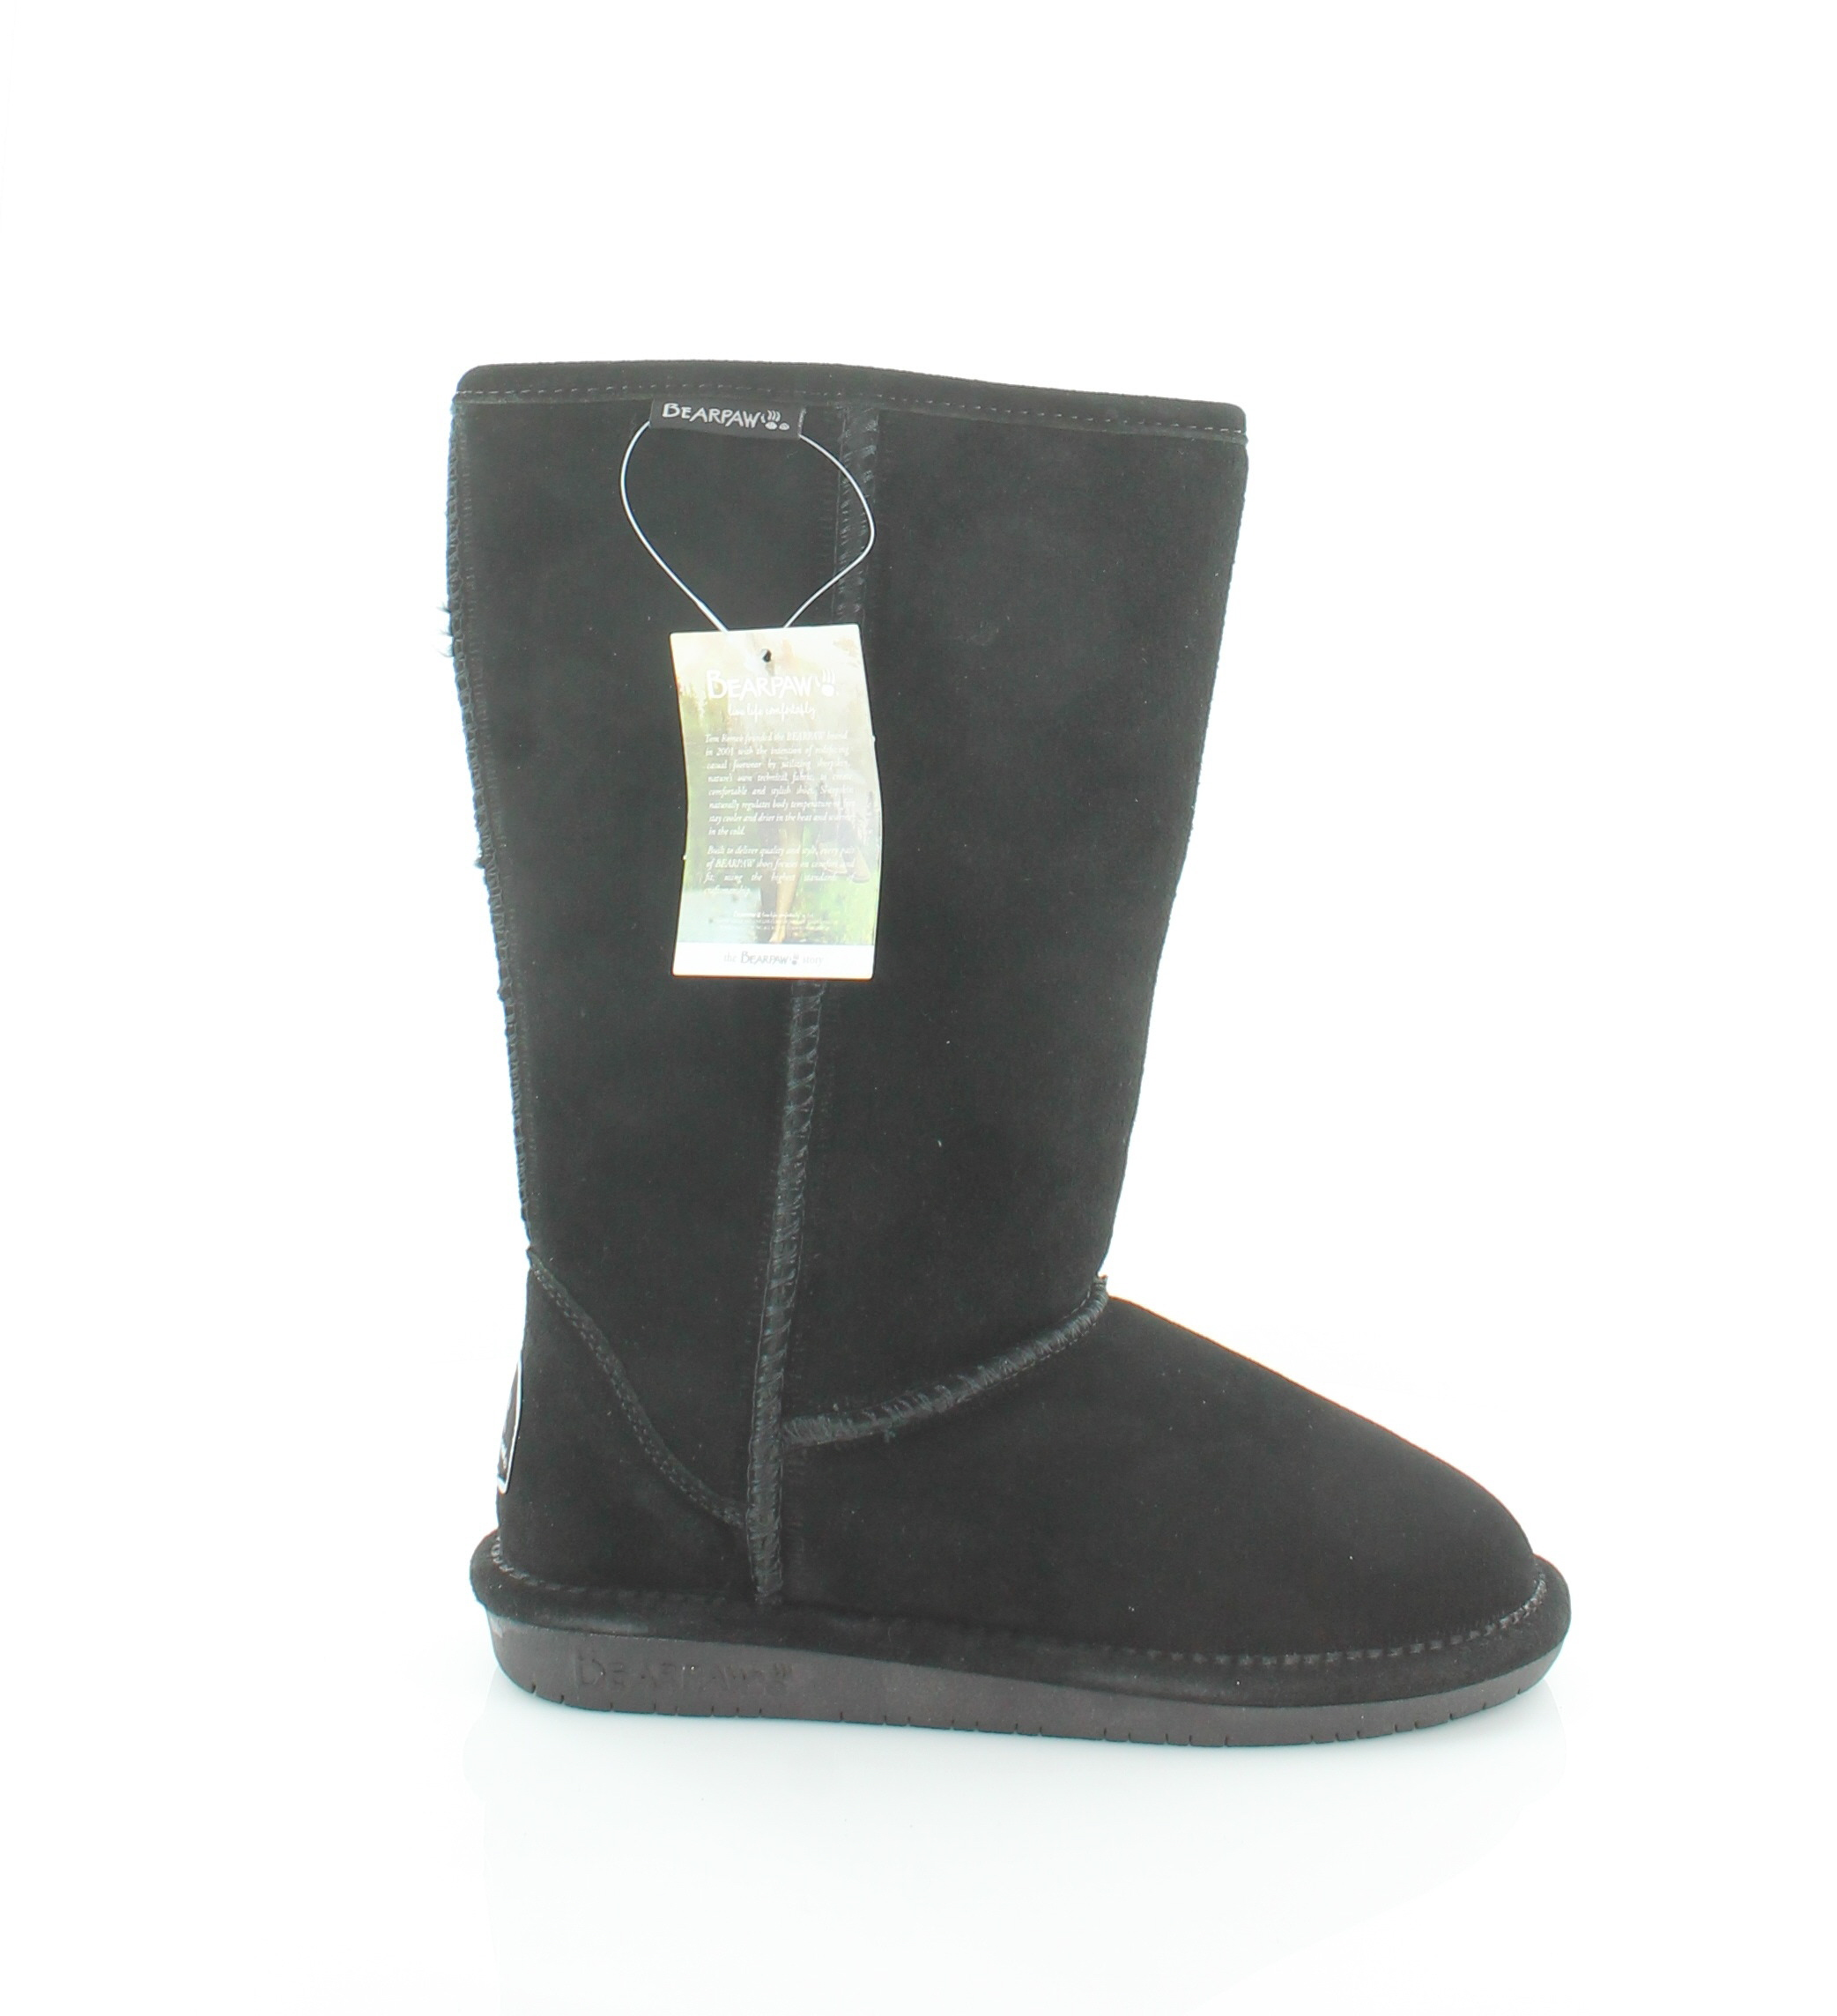 a85e8527f2df7 BEARPAW Emma Tall Womens Size 6 Black Suede Winter BOOTS UK 4 for ...